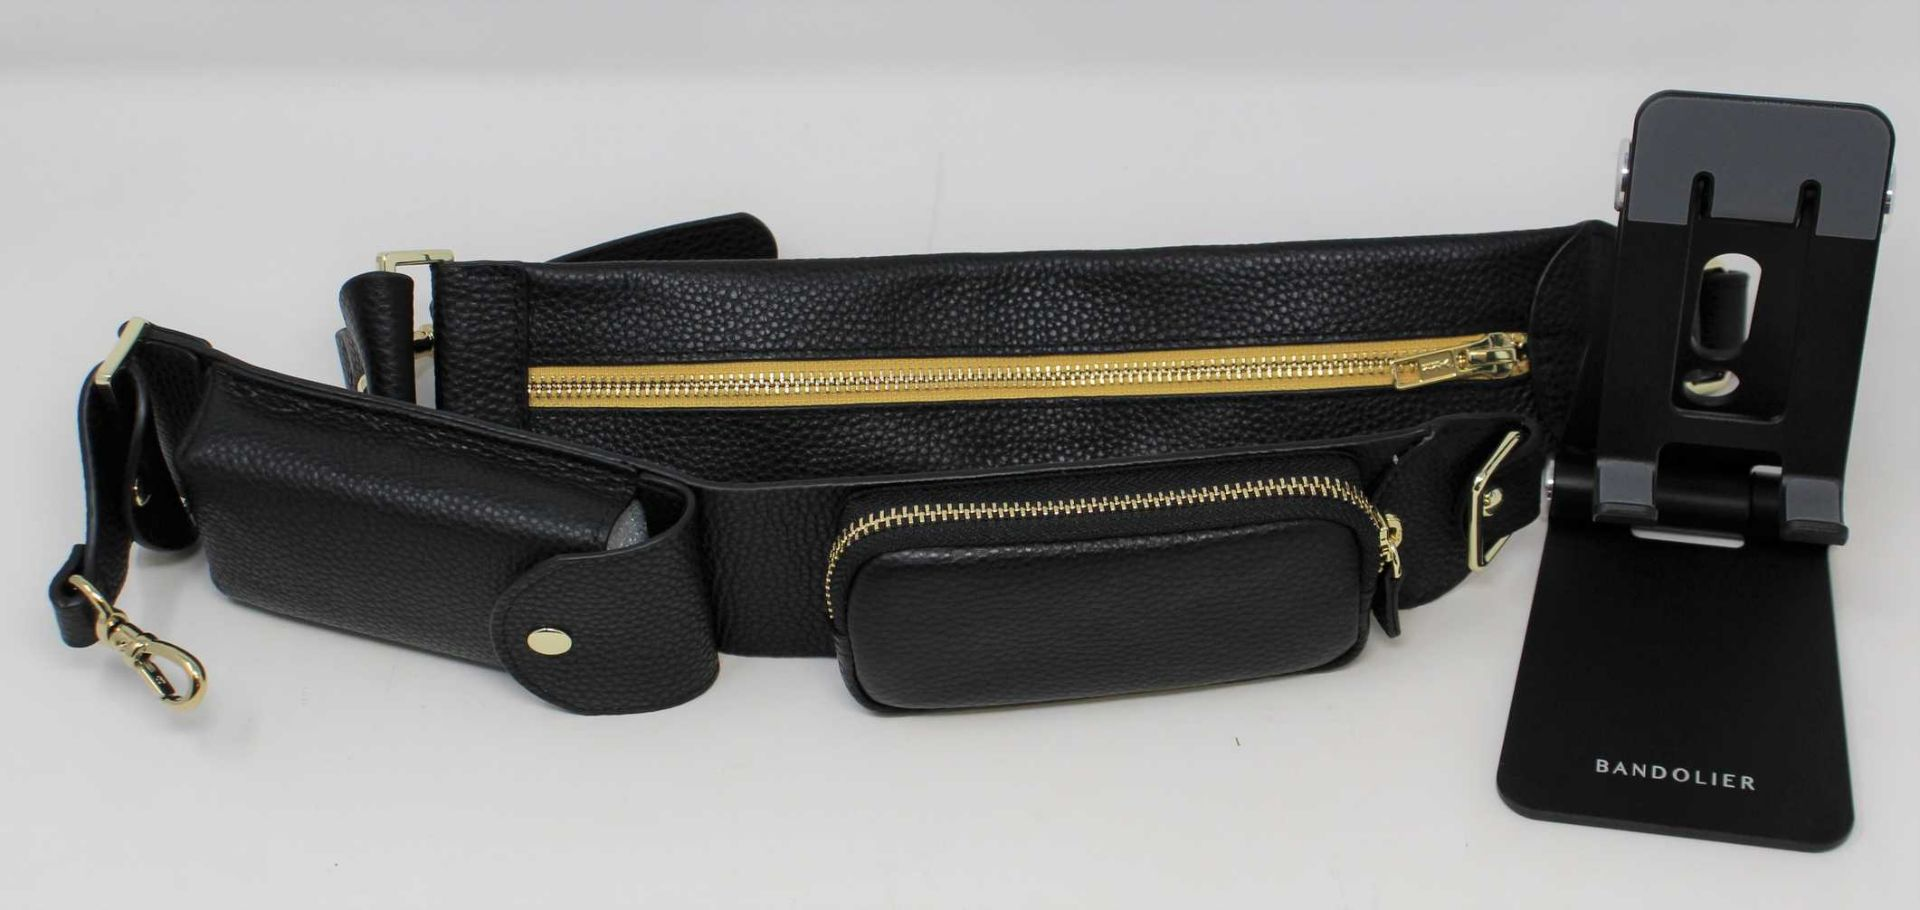 An as new Bandolier Billie Crossbody Utility Strap in Black/Gold (Strap only, phone case not